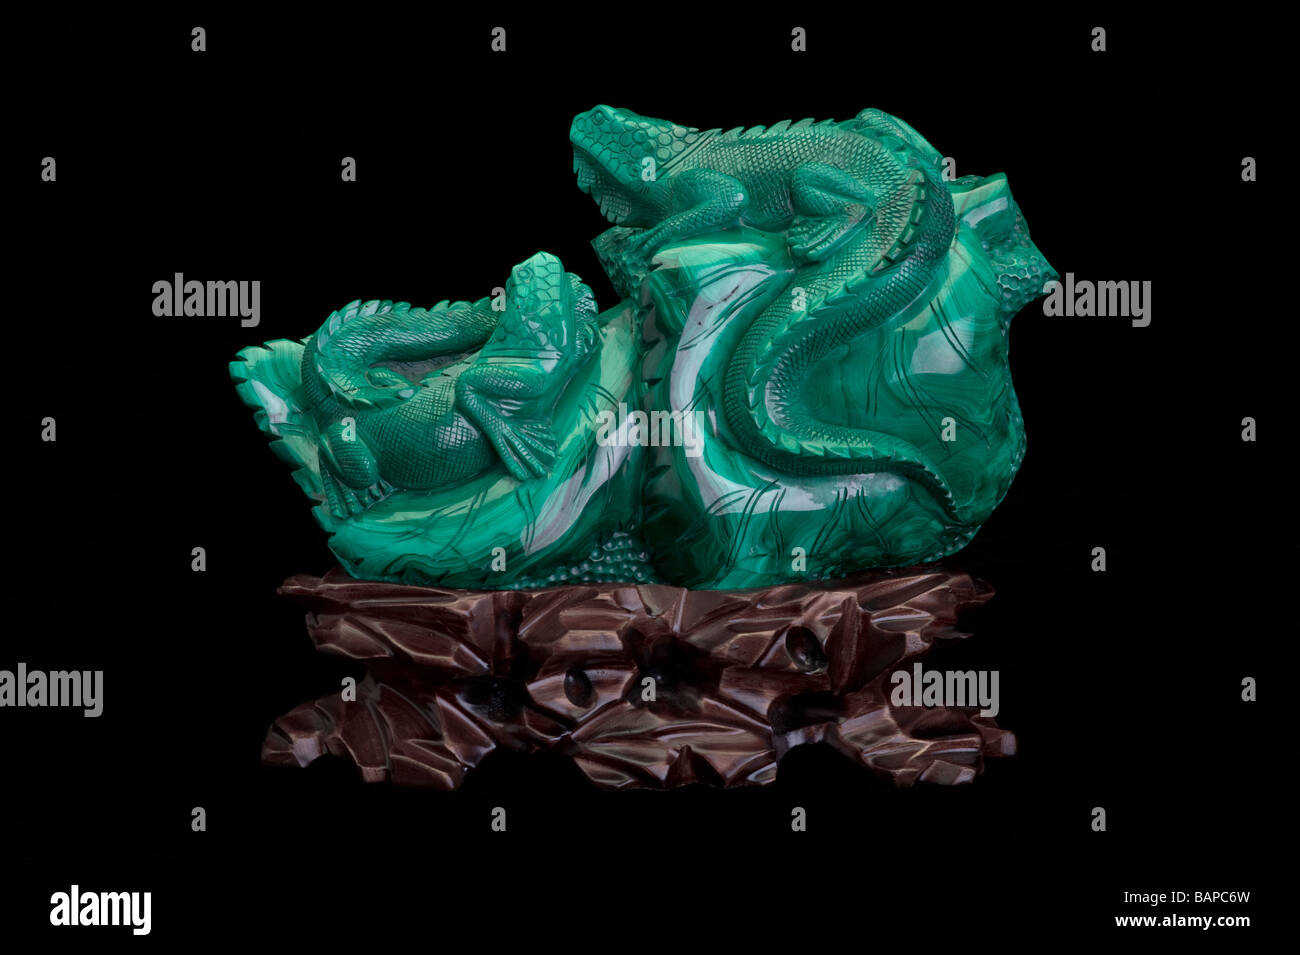 Malachite mineral carving on black background Stock Photo